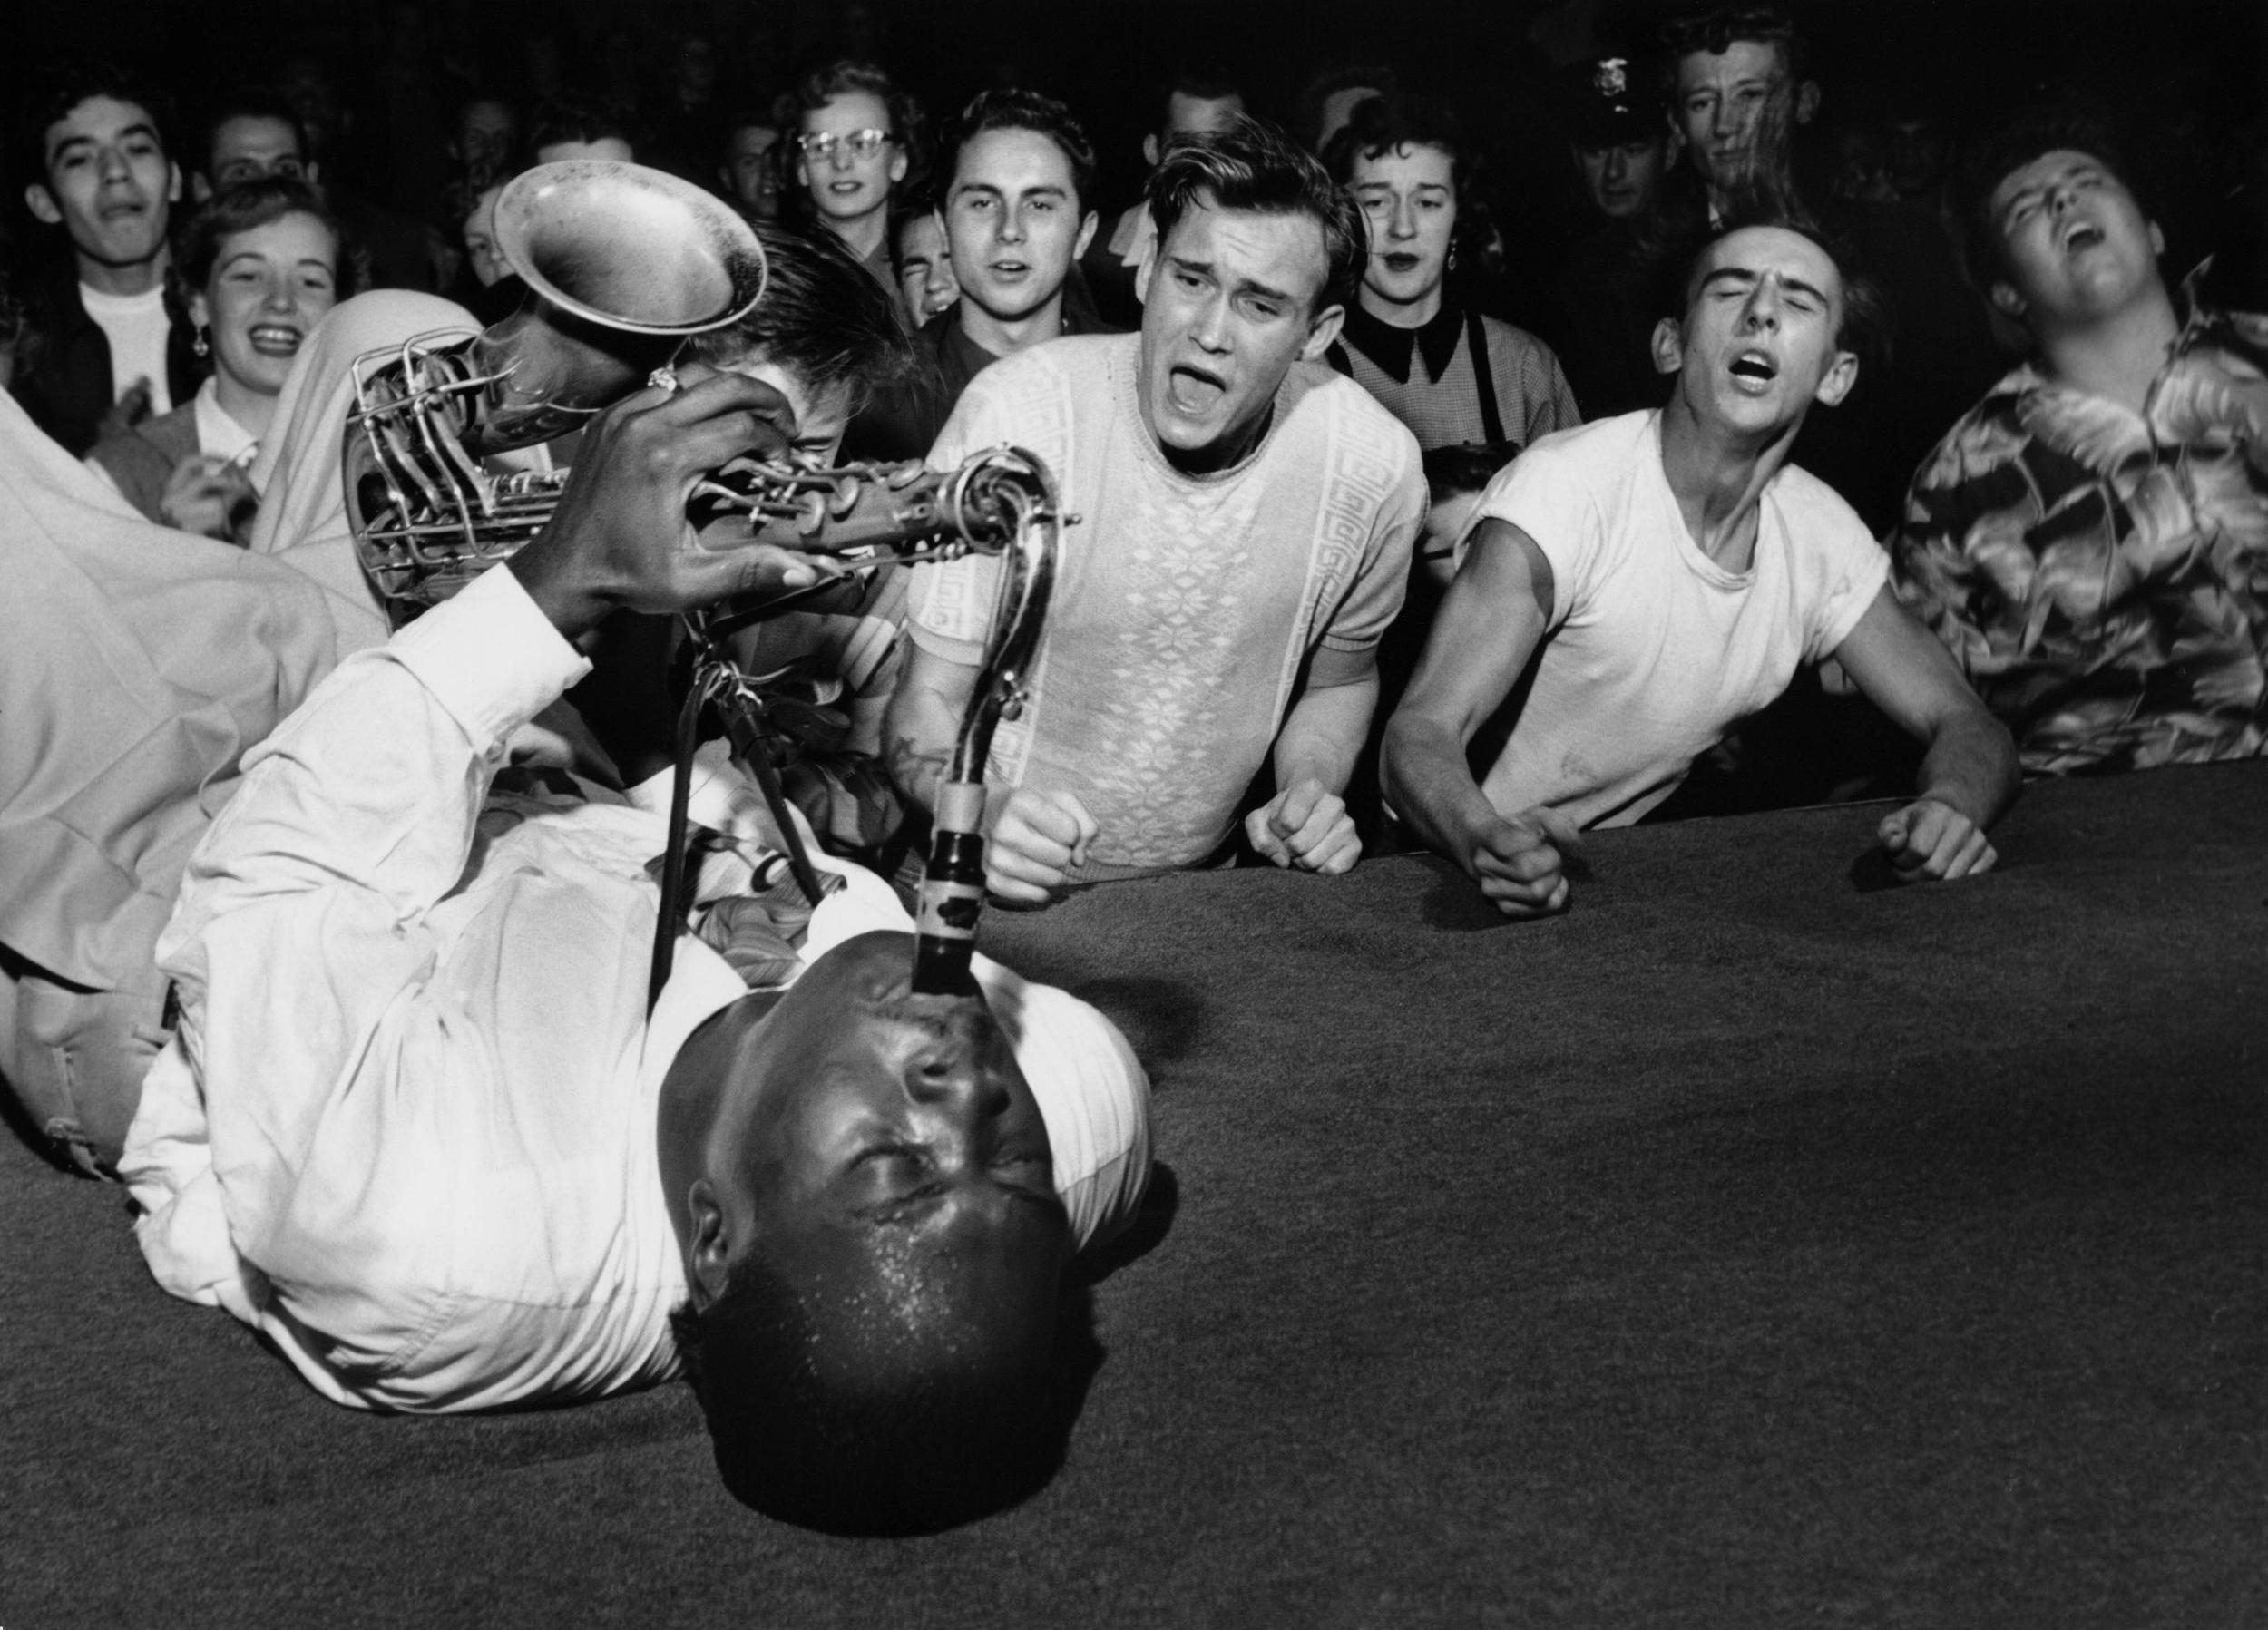 A famous photo of Big Jay McNeely by Bob Willoughby